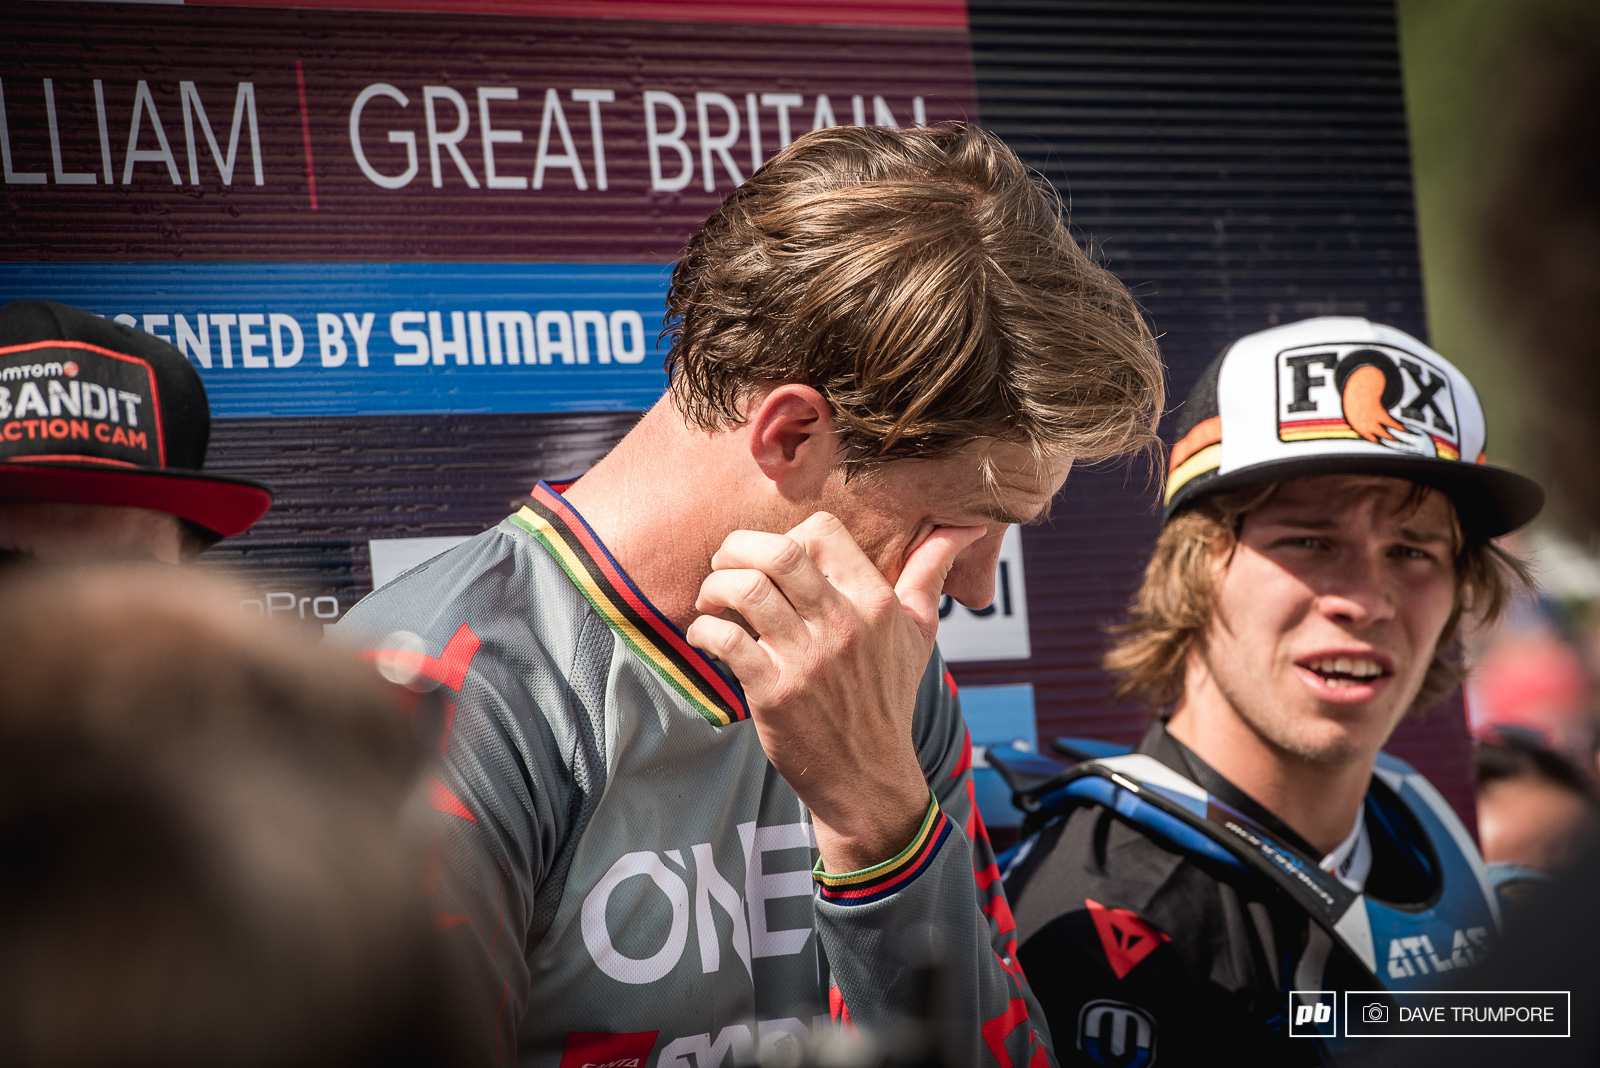 It was emotional few moments for a lot of riders especially those already in the finish arena.